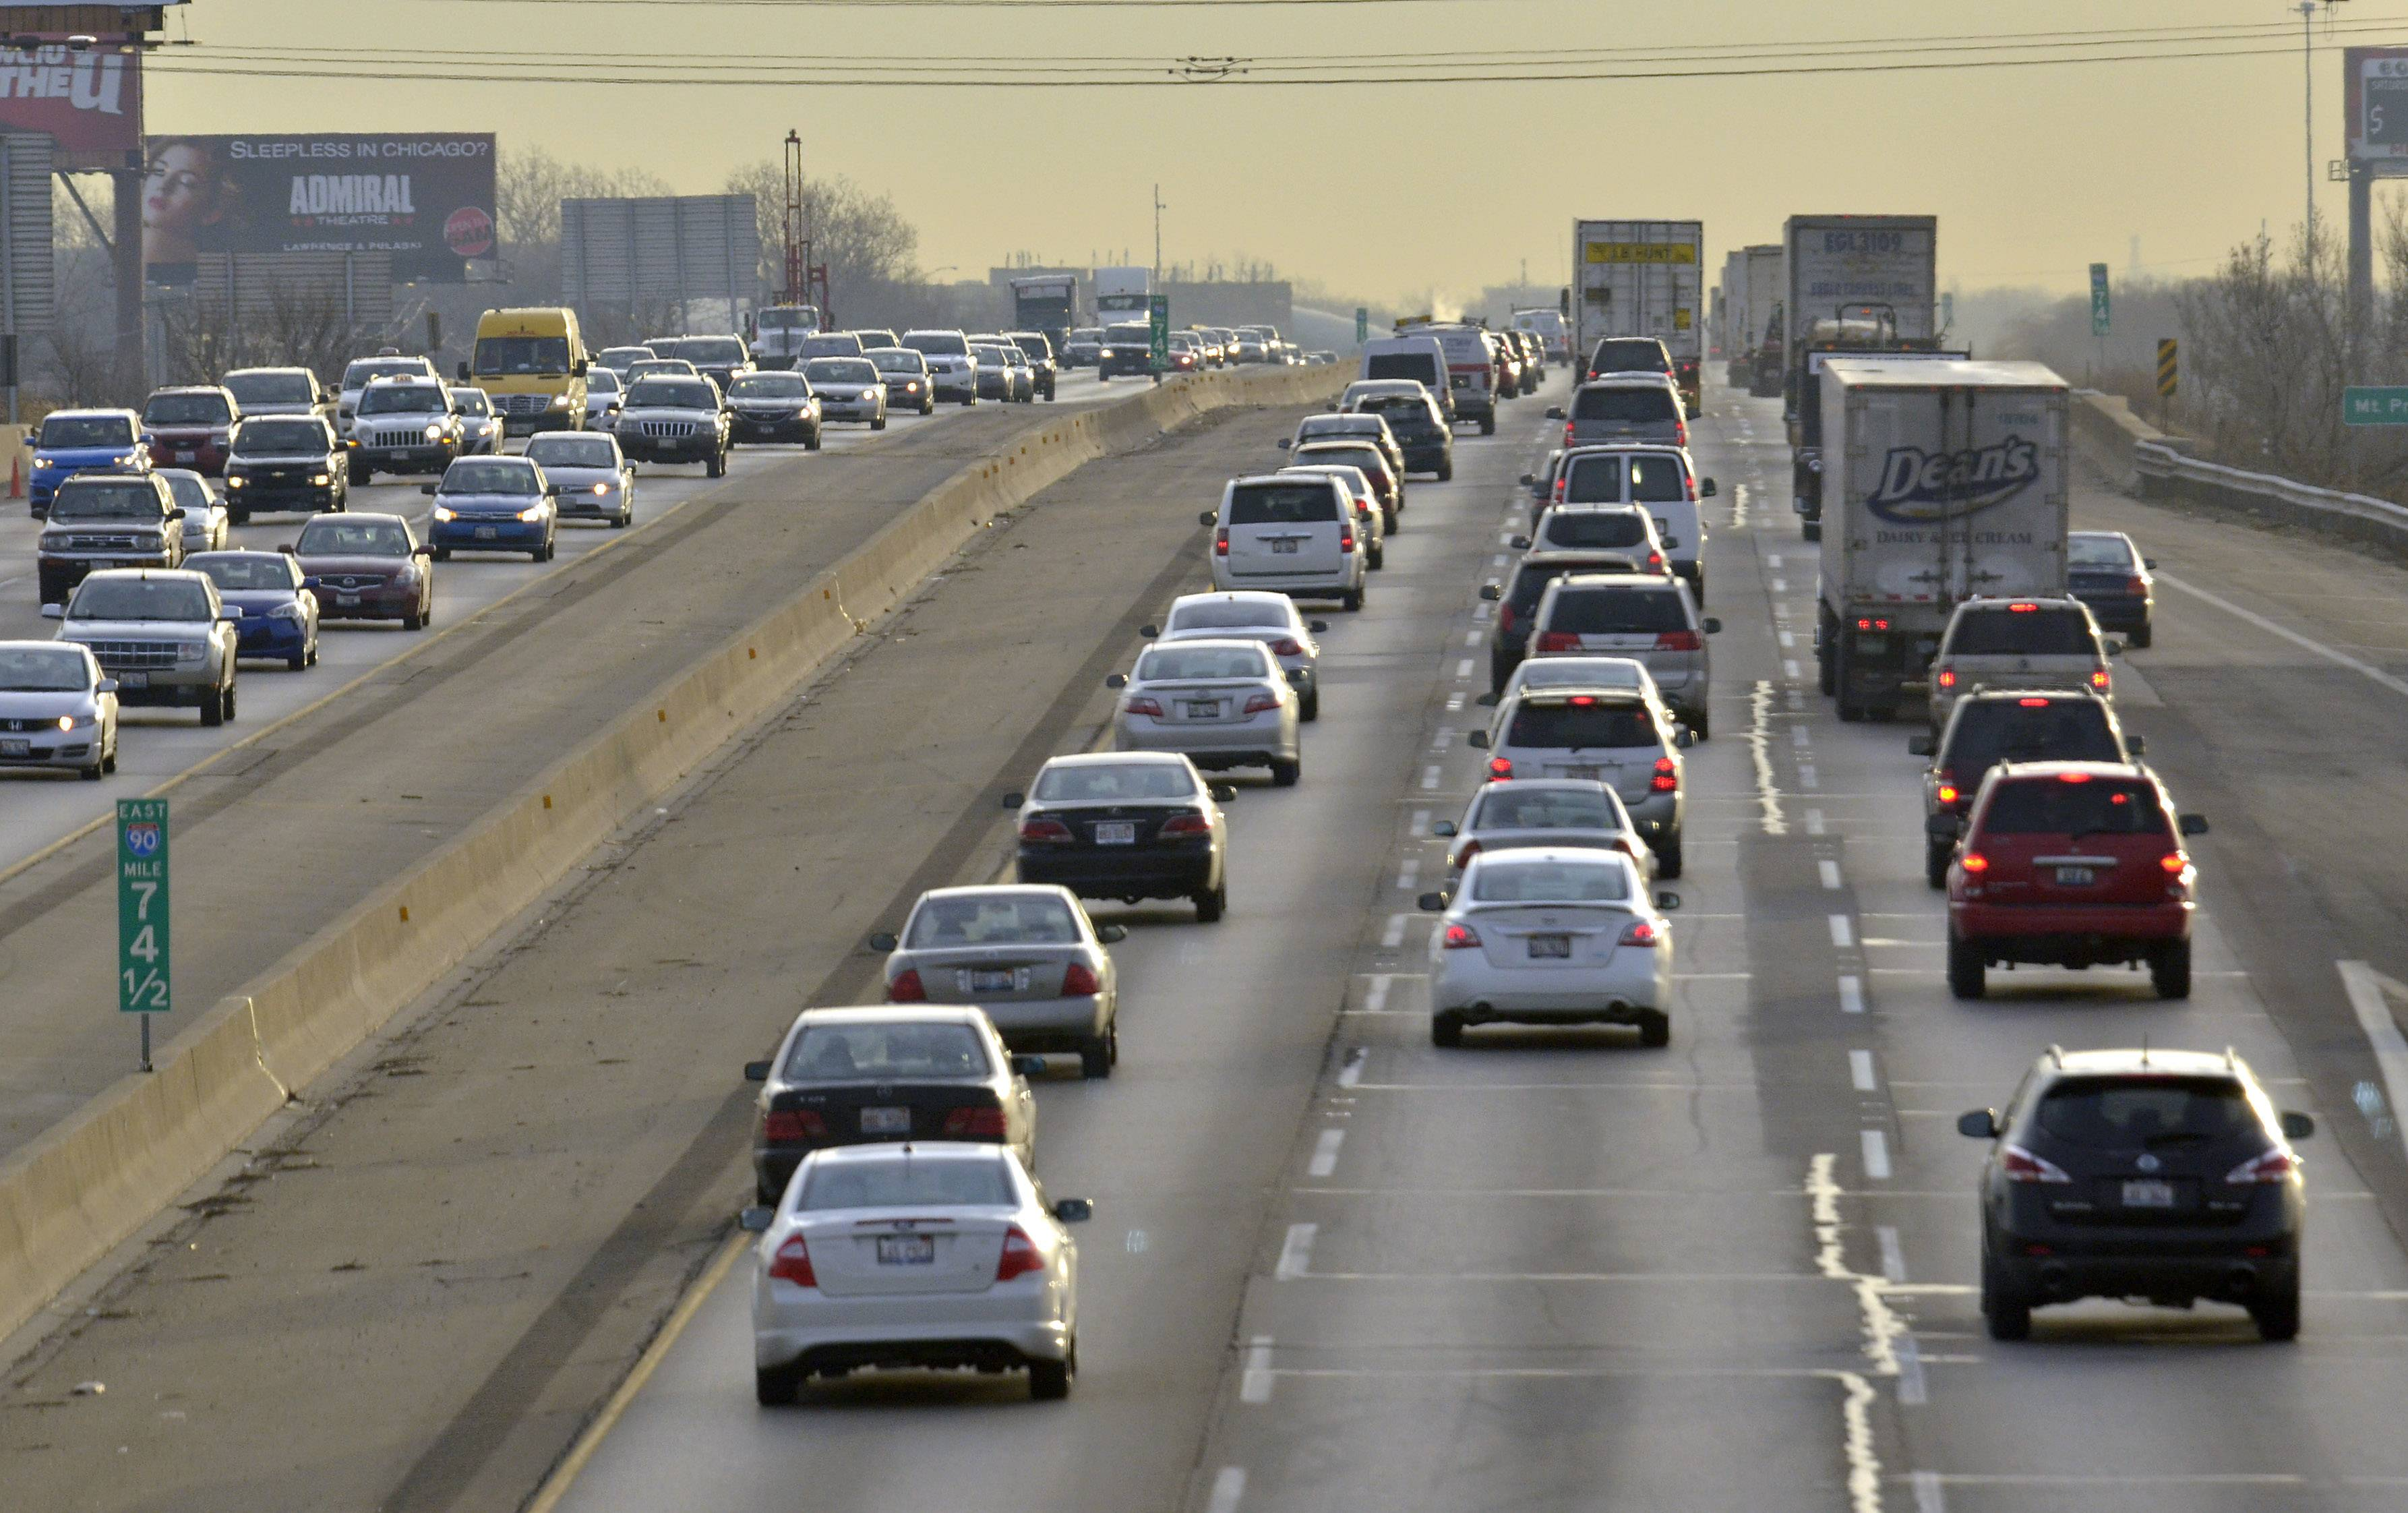 Environmental experts worry that the quality of air in the Chicago region could worsen now that the state budget impasse has led Illinois to  no longer will require proof of a current vehicle emissions test.